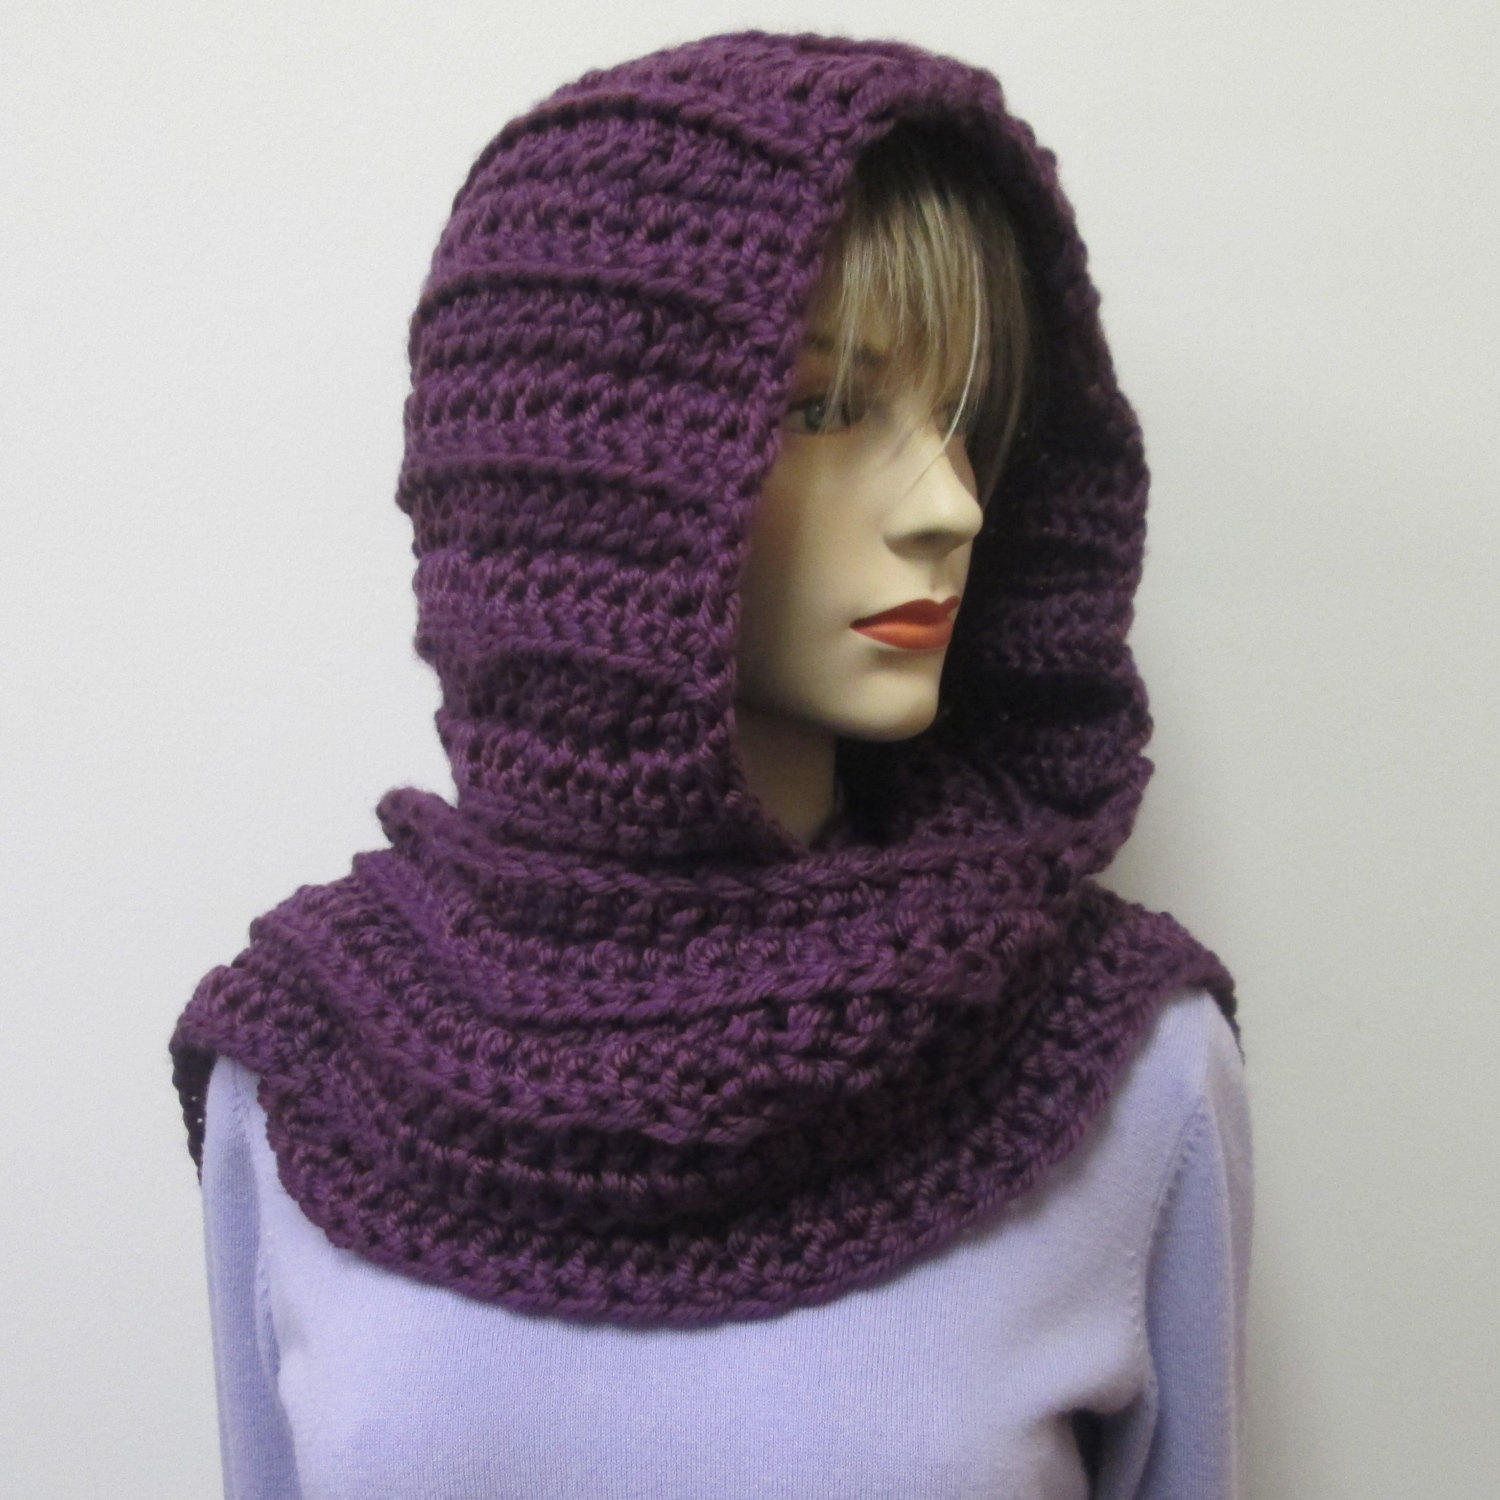 Drawn scarf hoody Scarf Hooded Crochet Scarf Hood